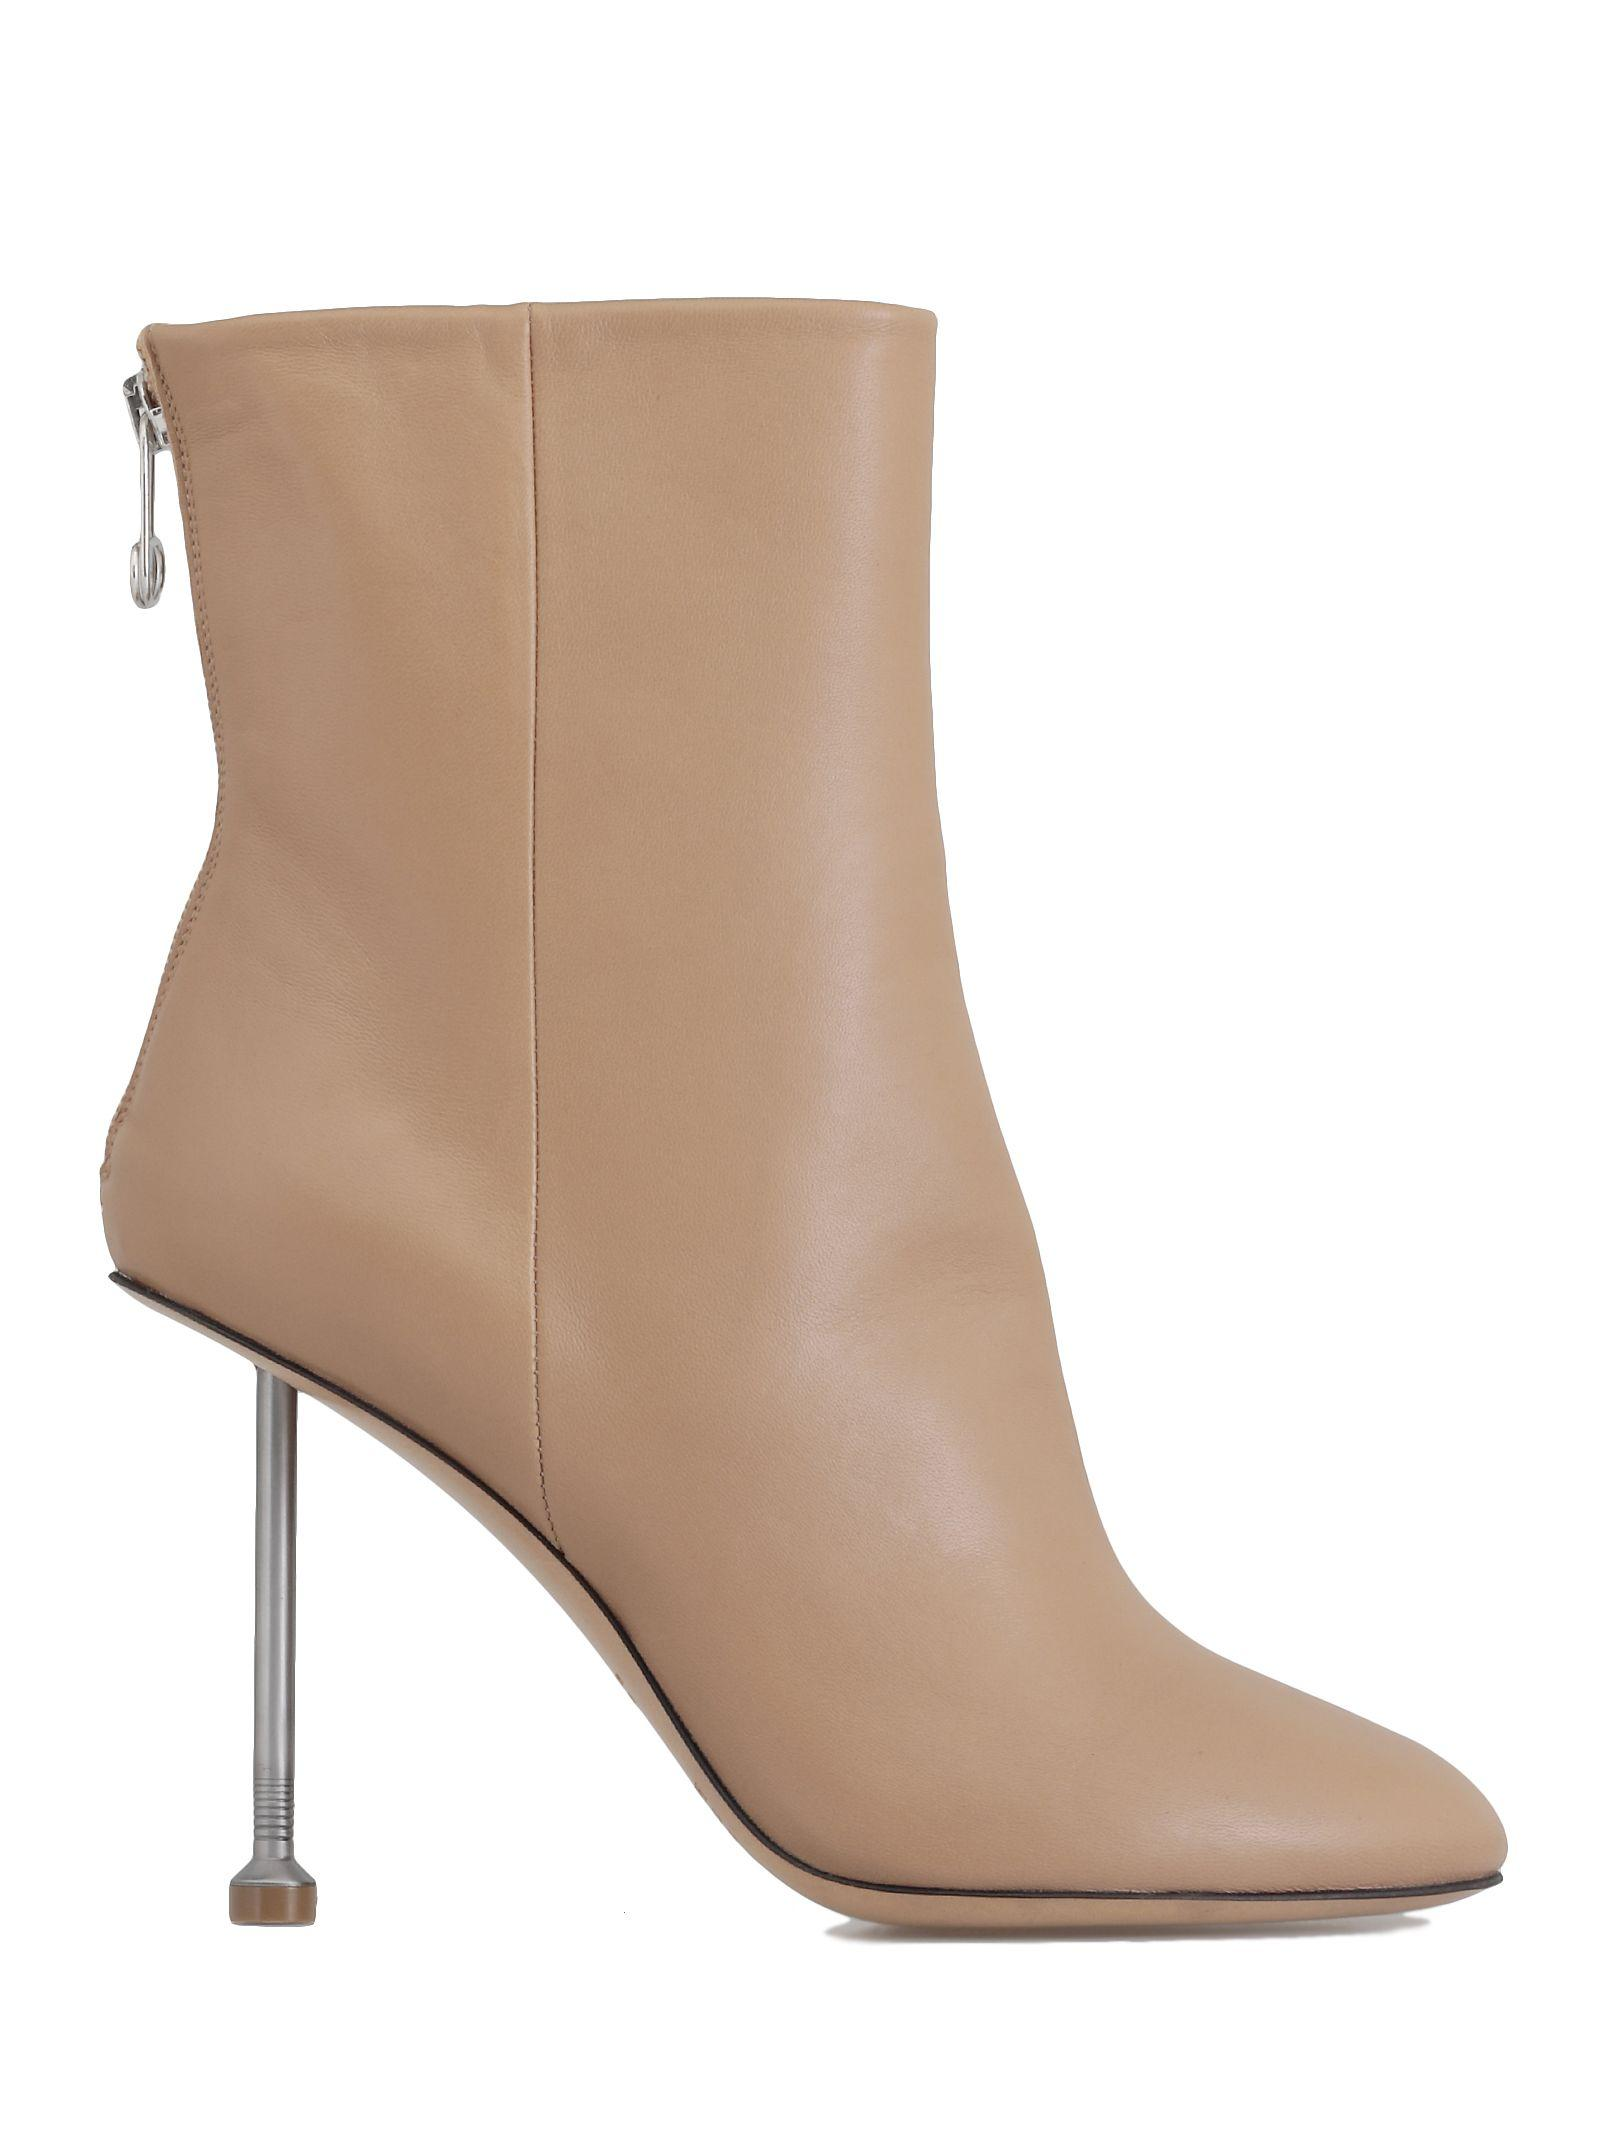 Maison Margiela Leather Ankle Boot In Nude